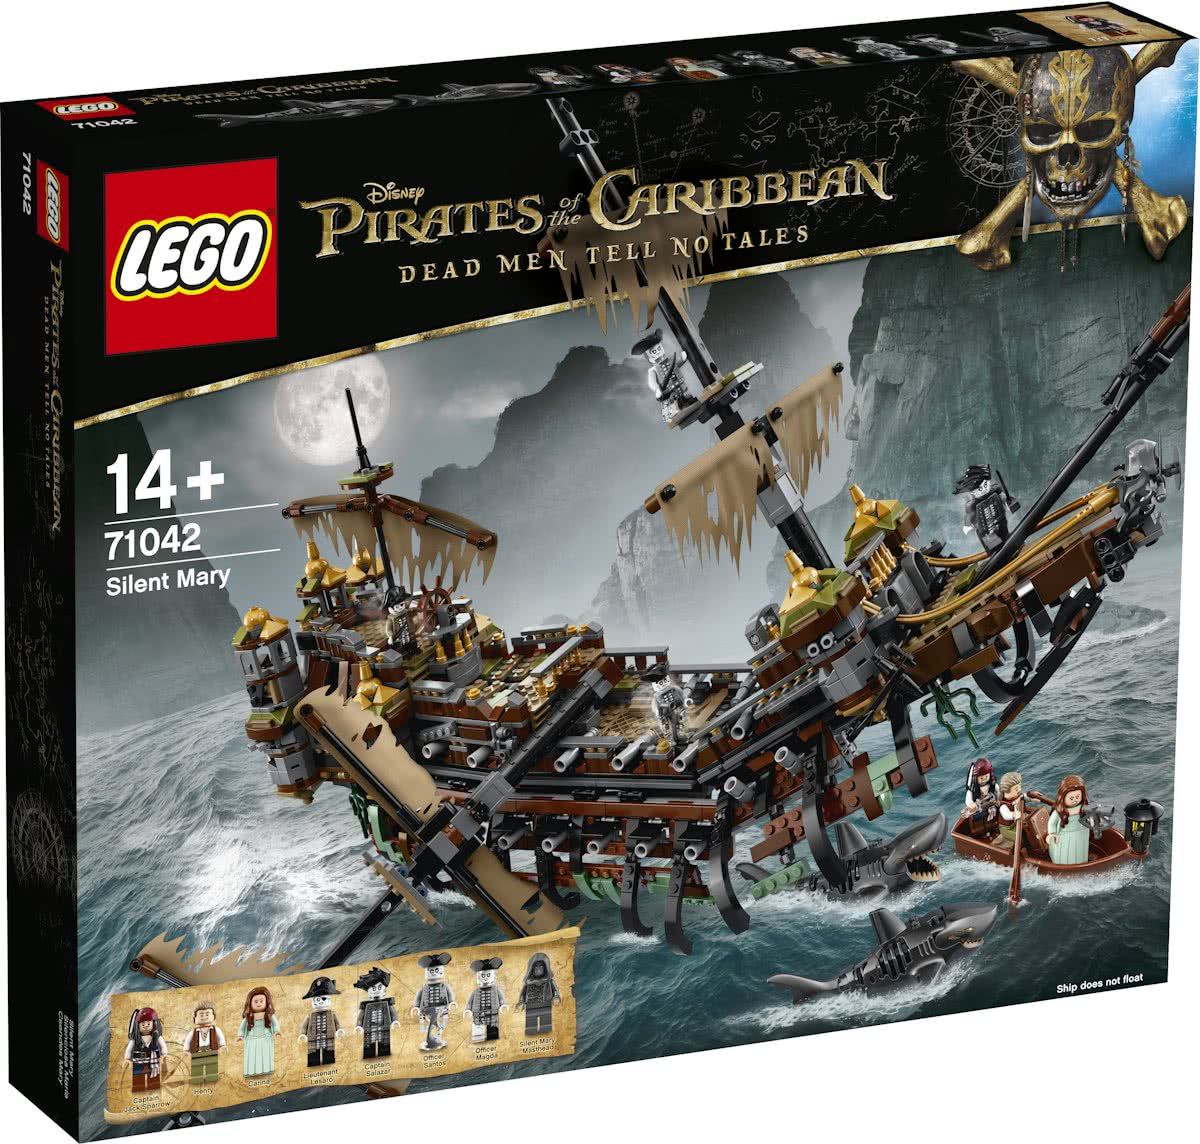 LEGO Pirates of the Caribbean Stille Mary - 71042